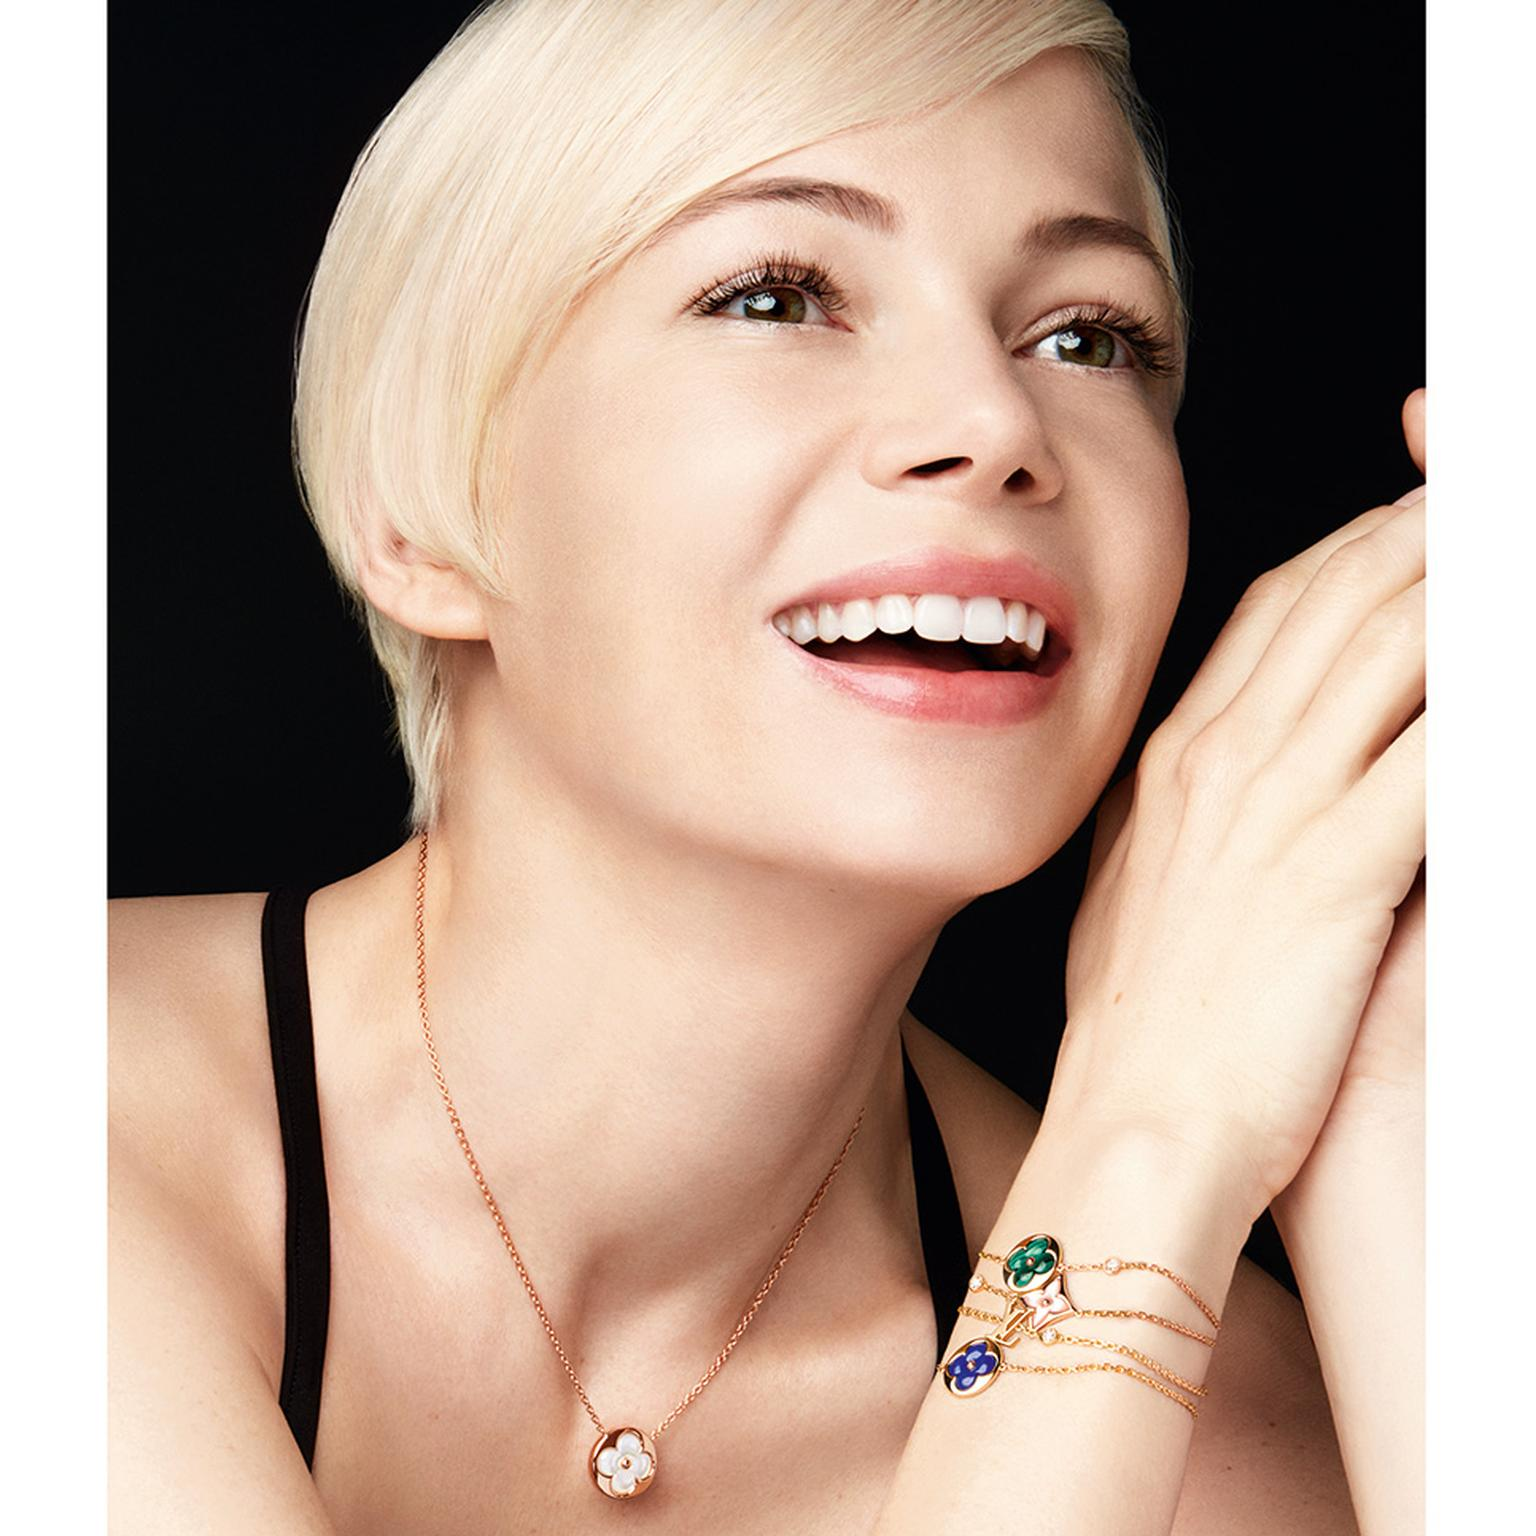 Louis Vuitton ad campaign michelle williams